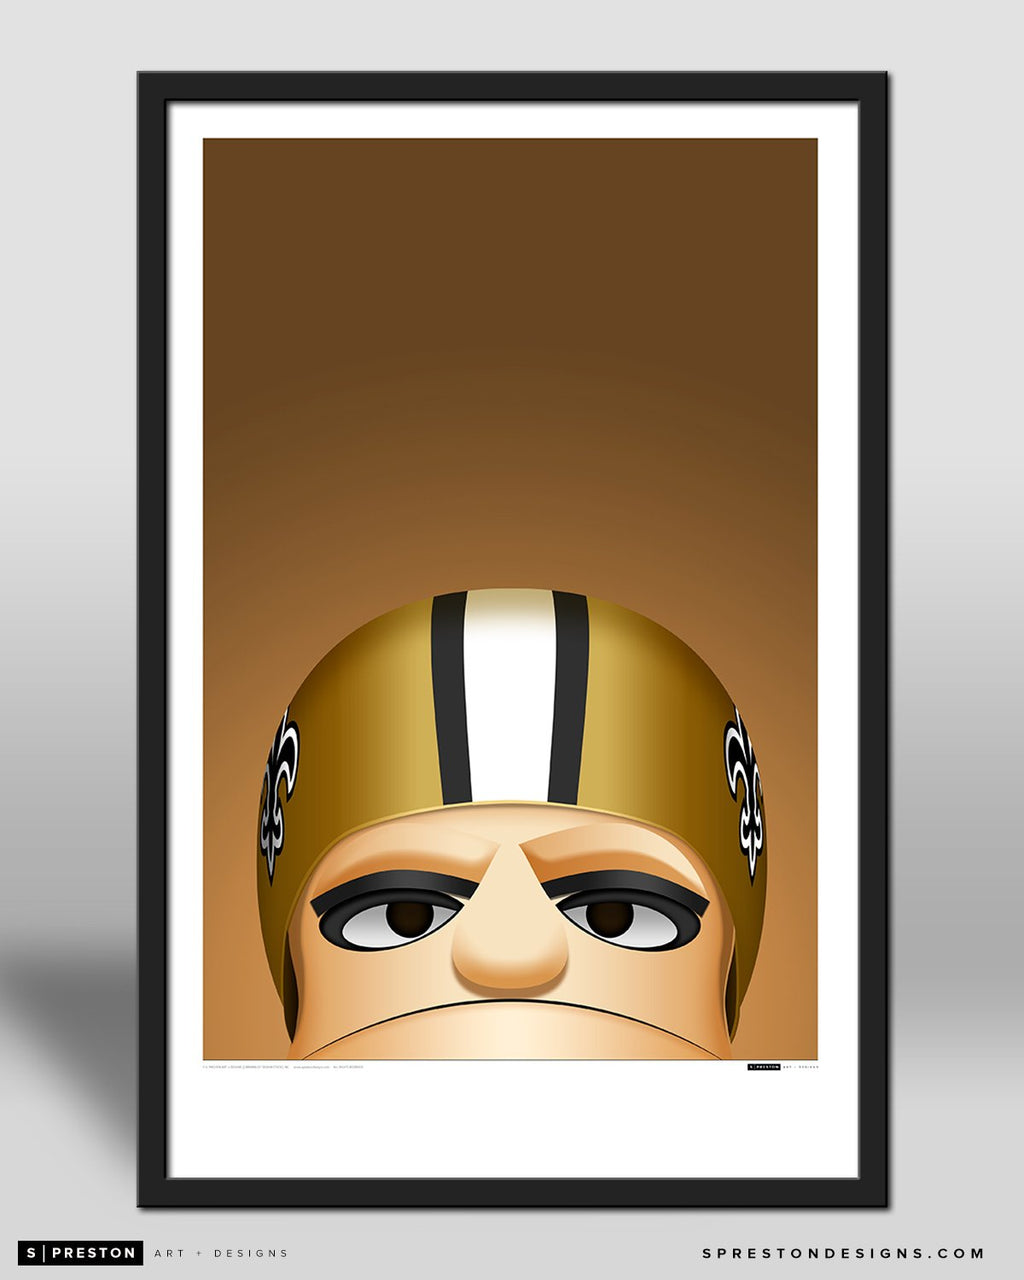 Minimalist Mascotn by S. Preston - official mascot of the New Orleans Saints